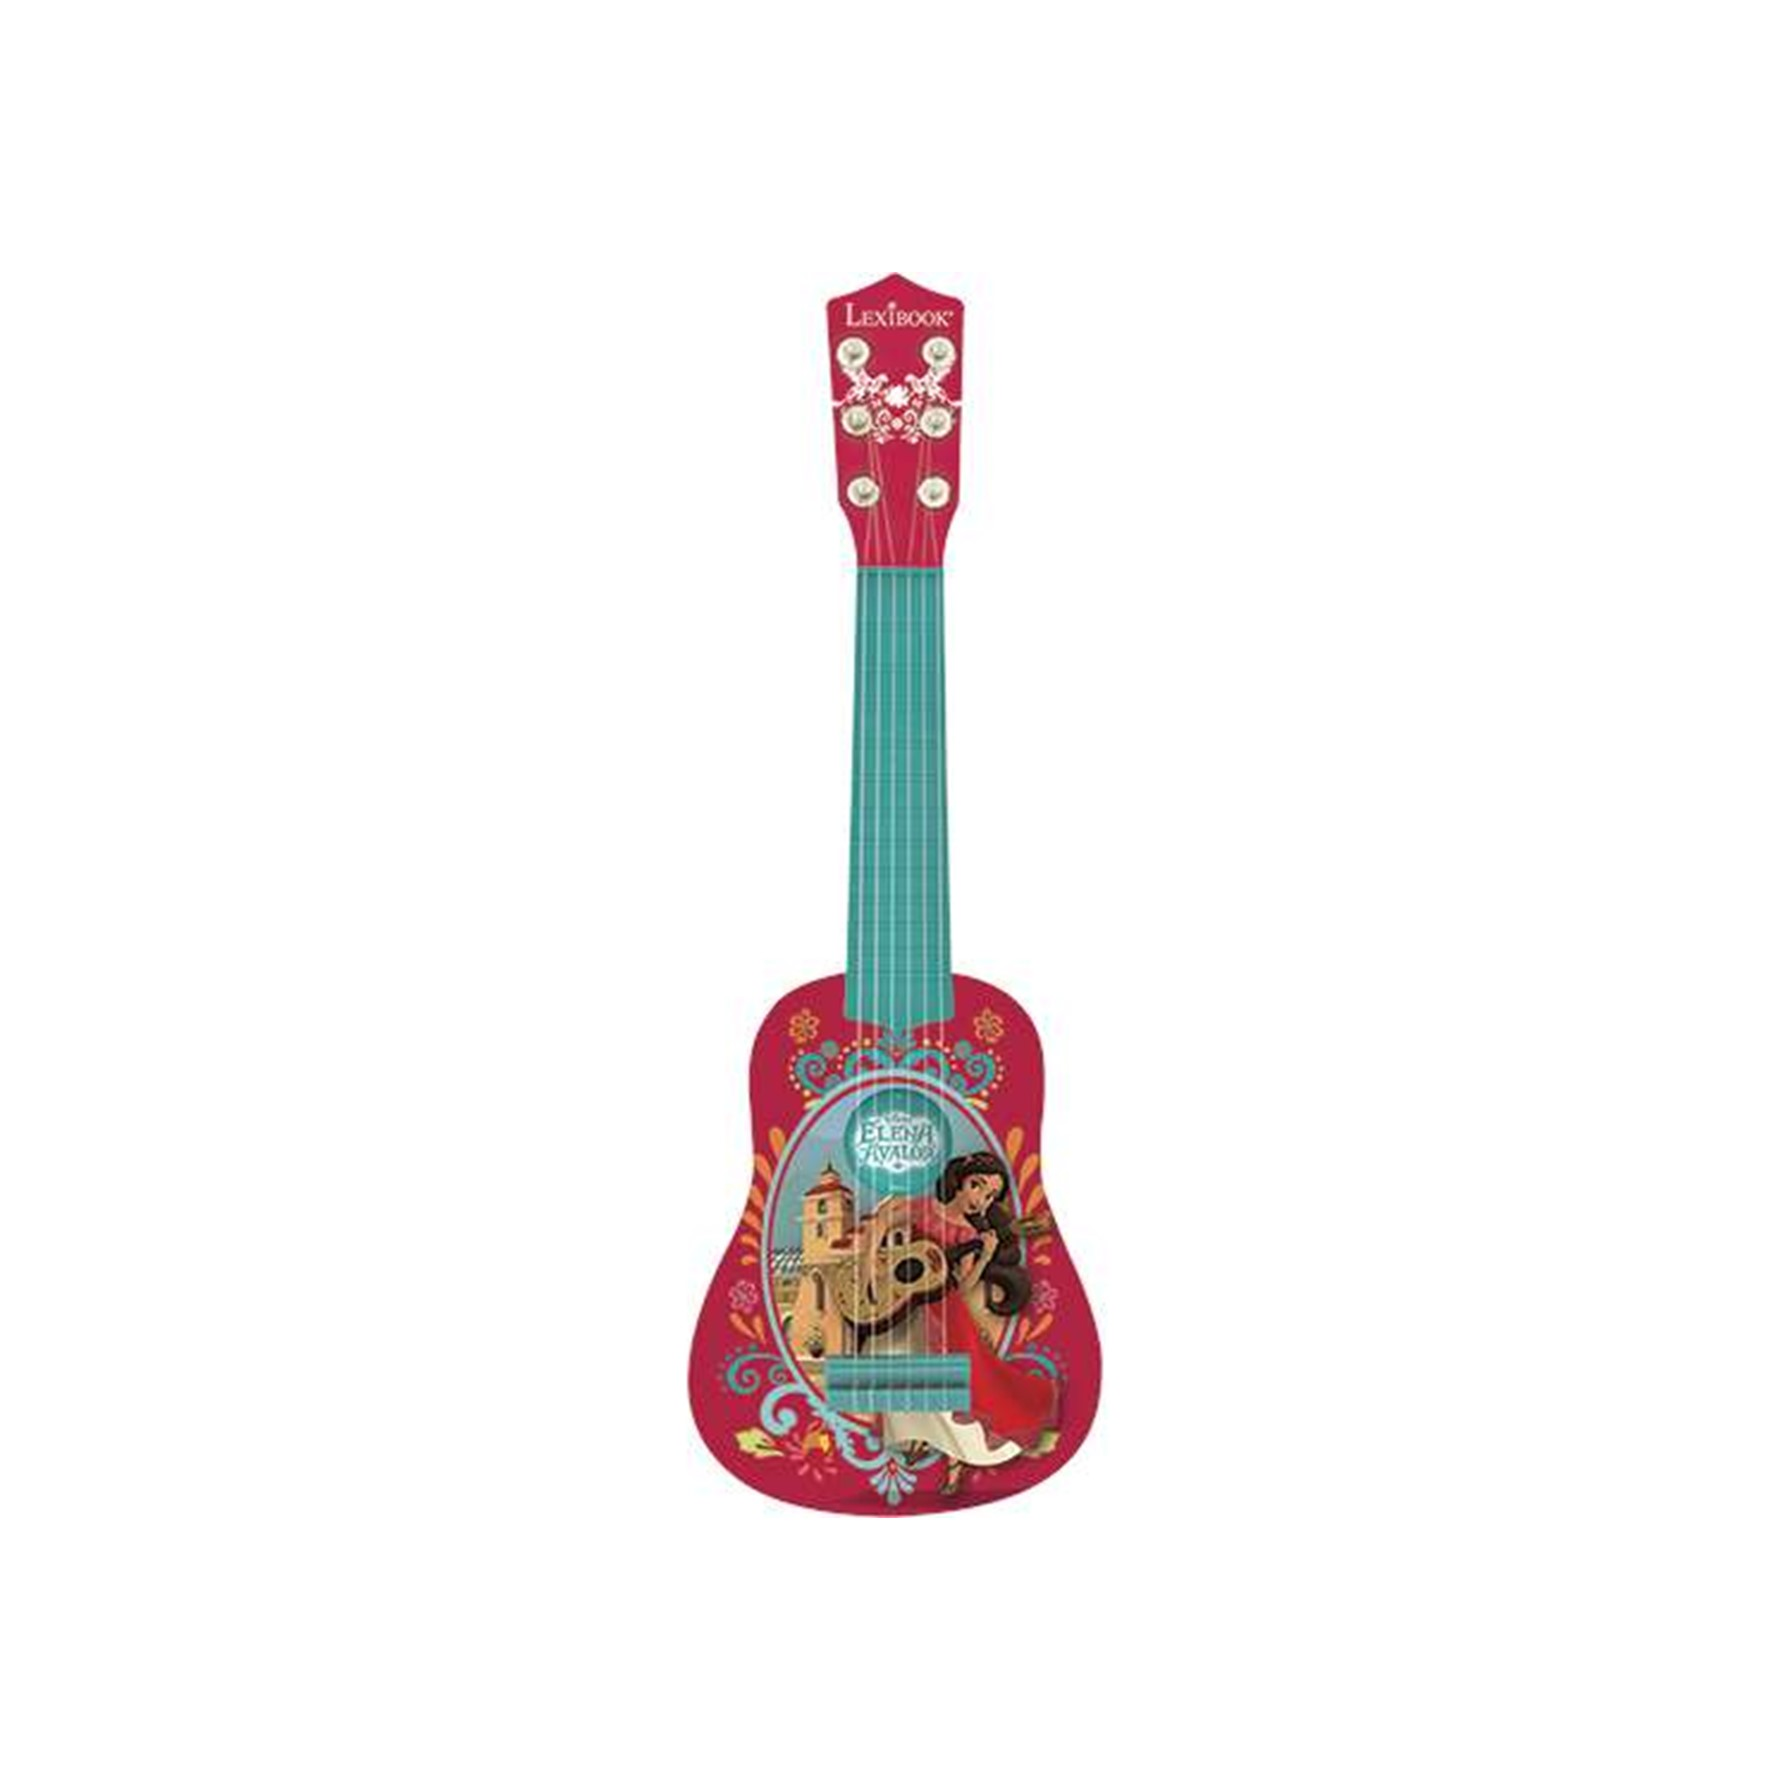 Elena Avalor Guitarra 53Cm